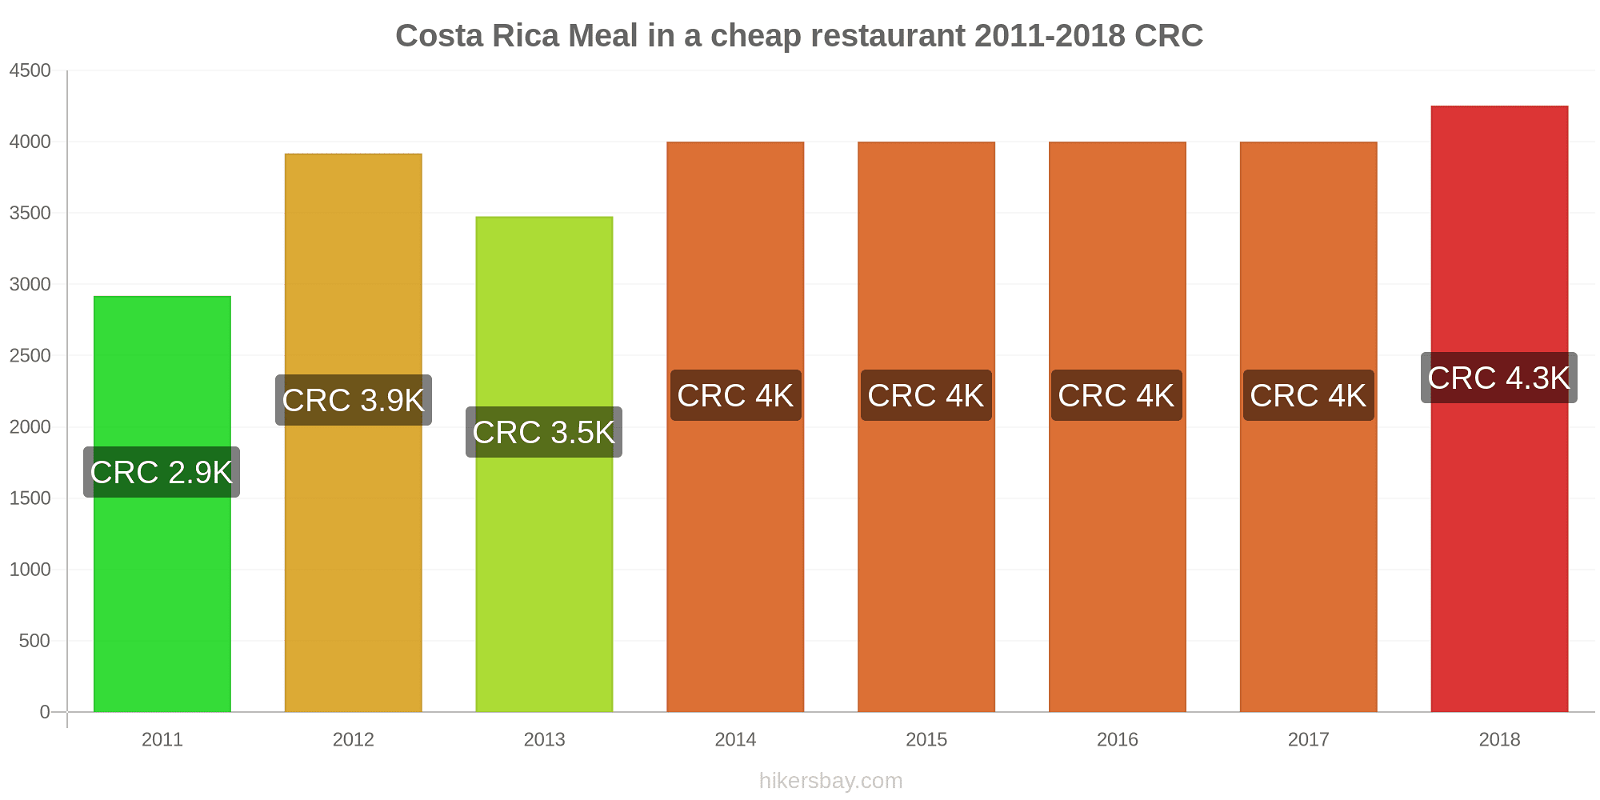 Costa Rica price changes Meal in a cheap restaurant hikersbay.com